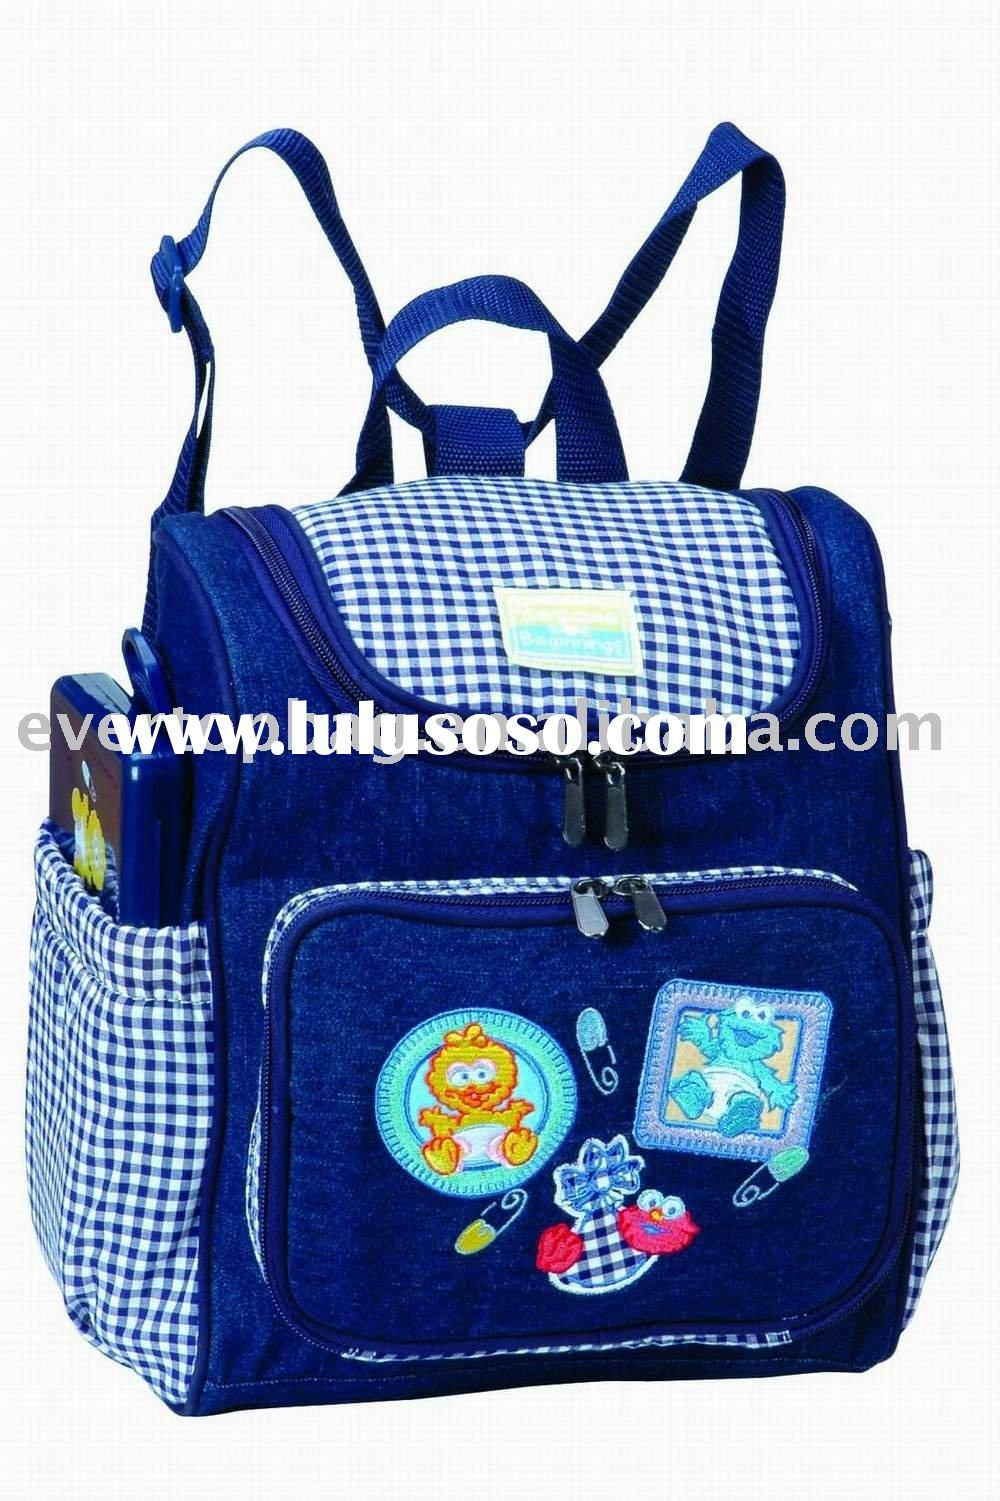 Durable Baby diaper bag